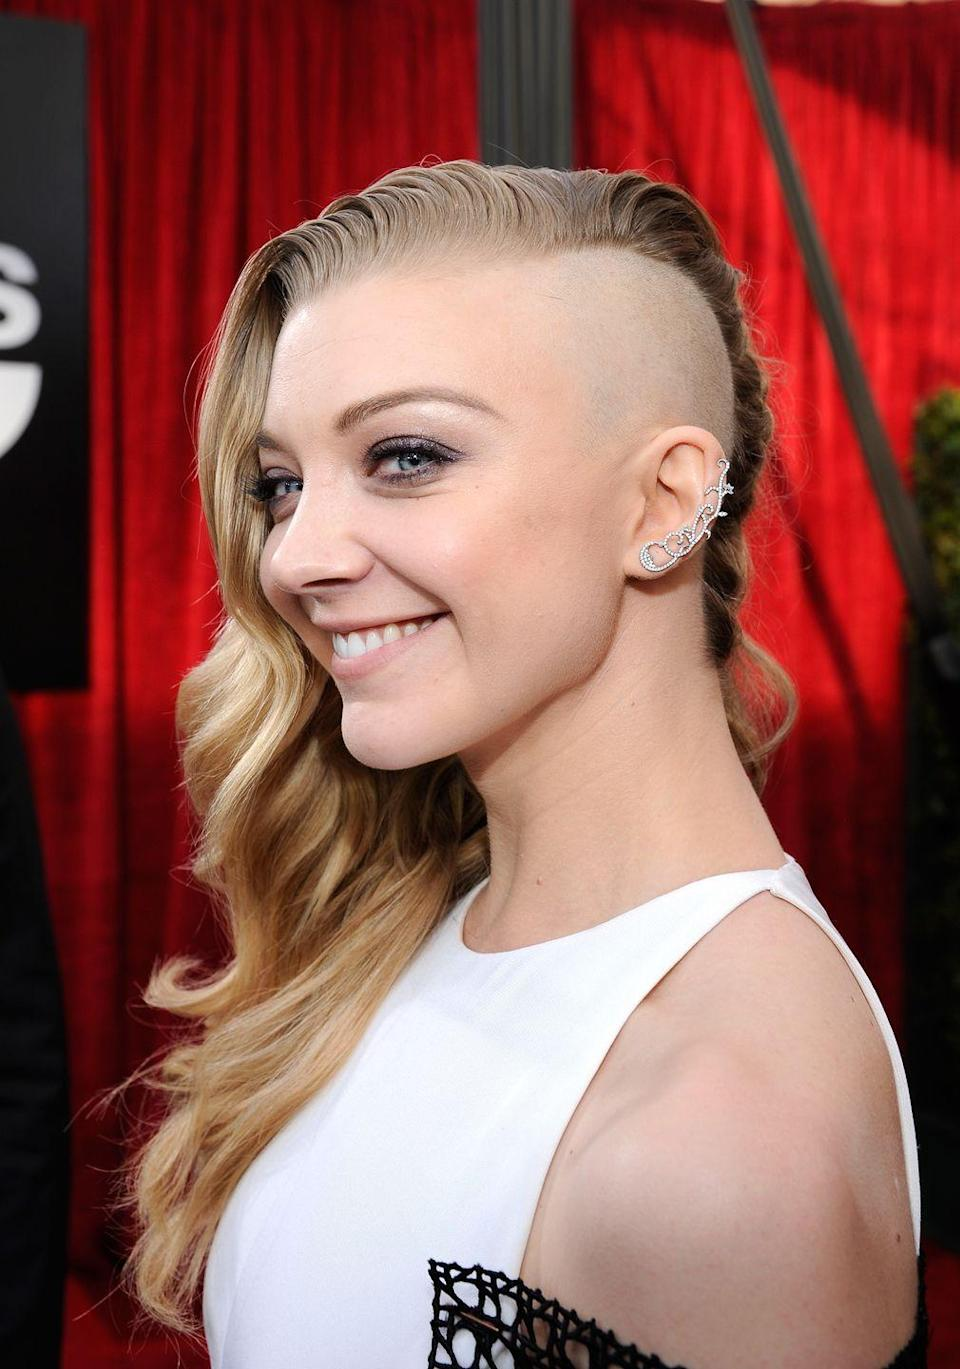 <p>It wasn't just her acting chops that snagged Natalie Dormer a role in <em>The Hunger Games </em>— it was also her willingness to part with her hair. (Or, at least half of her hair.) The actress shaved the side of her head for an edgy look to play Cressida in the action film. </p>